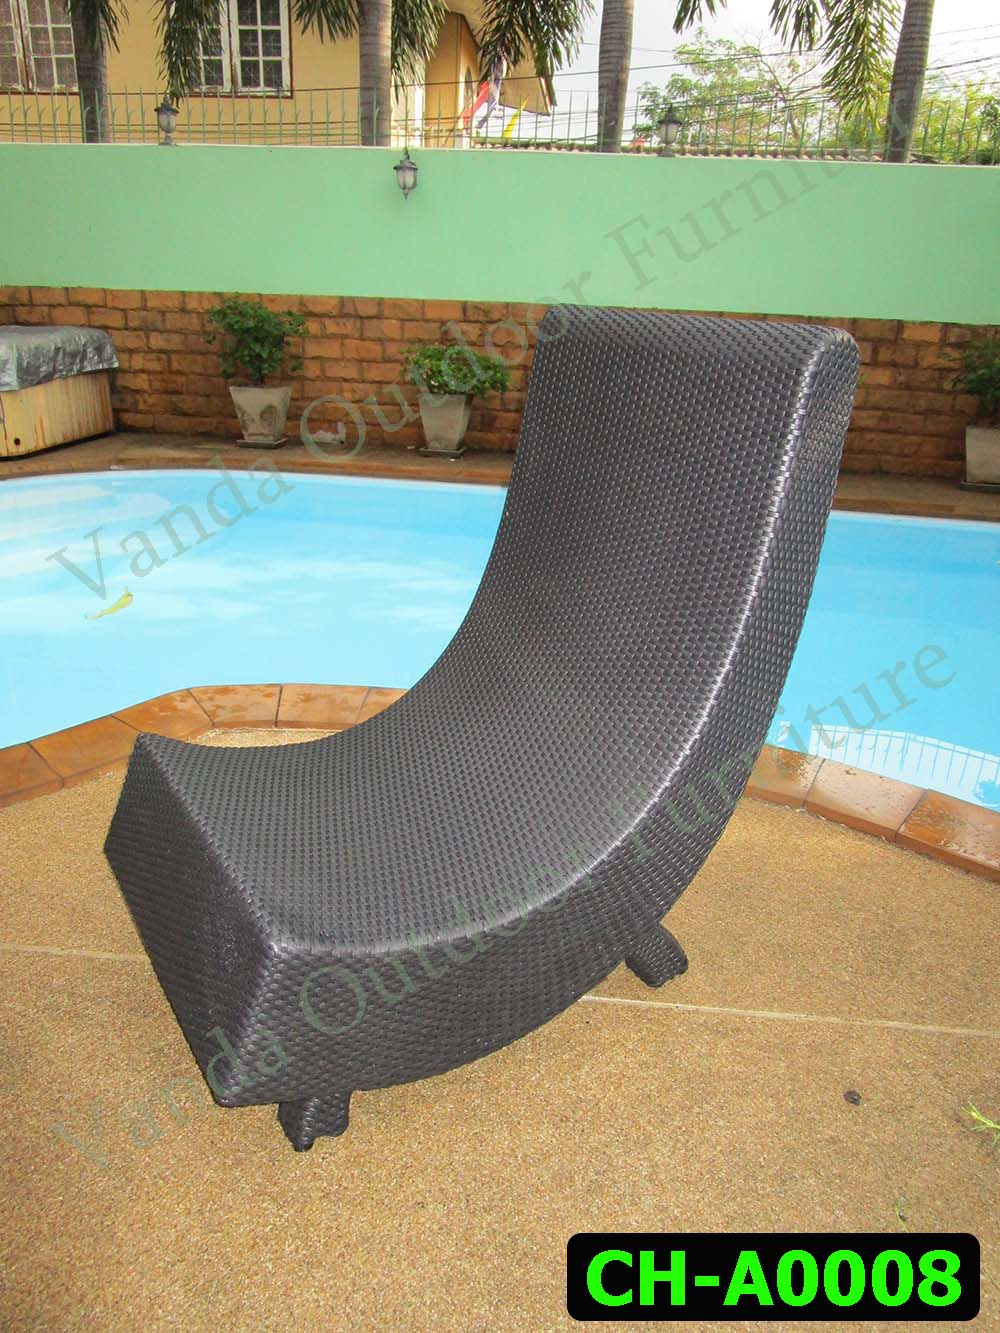 Rattan Chair Product code CH-A0008